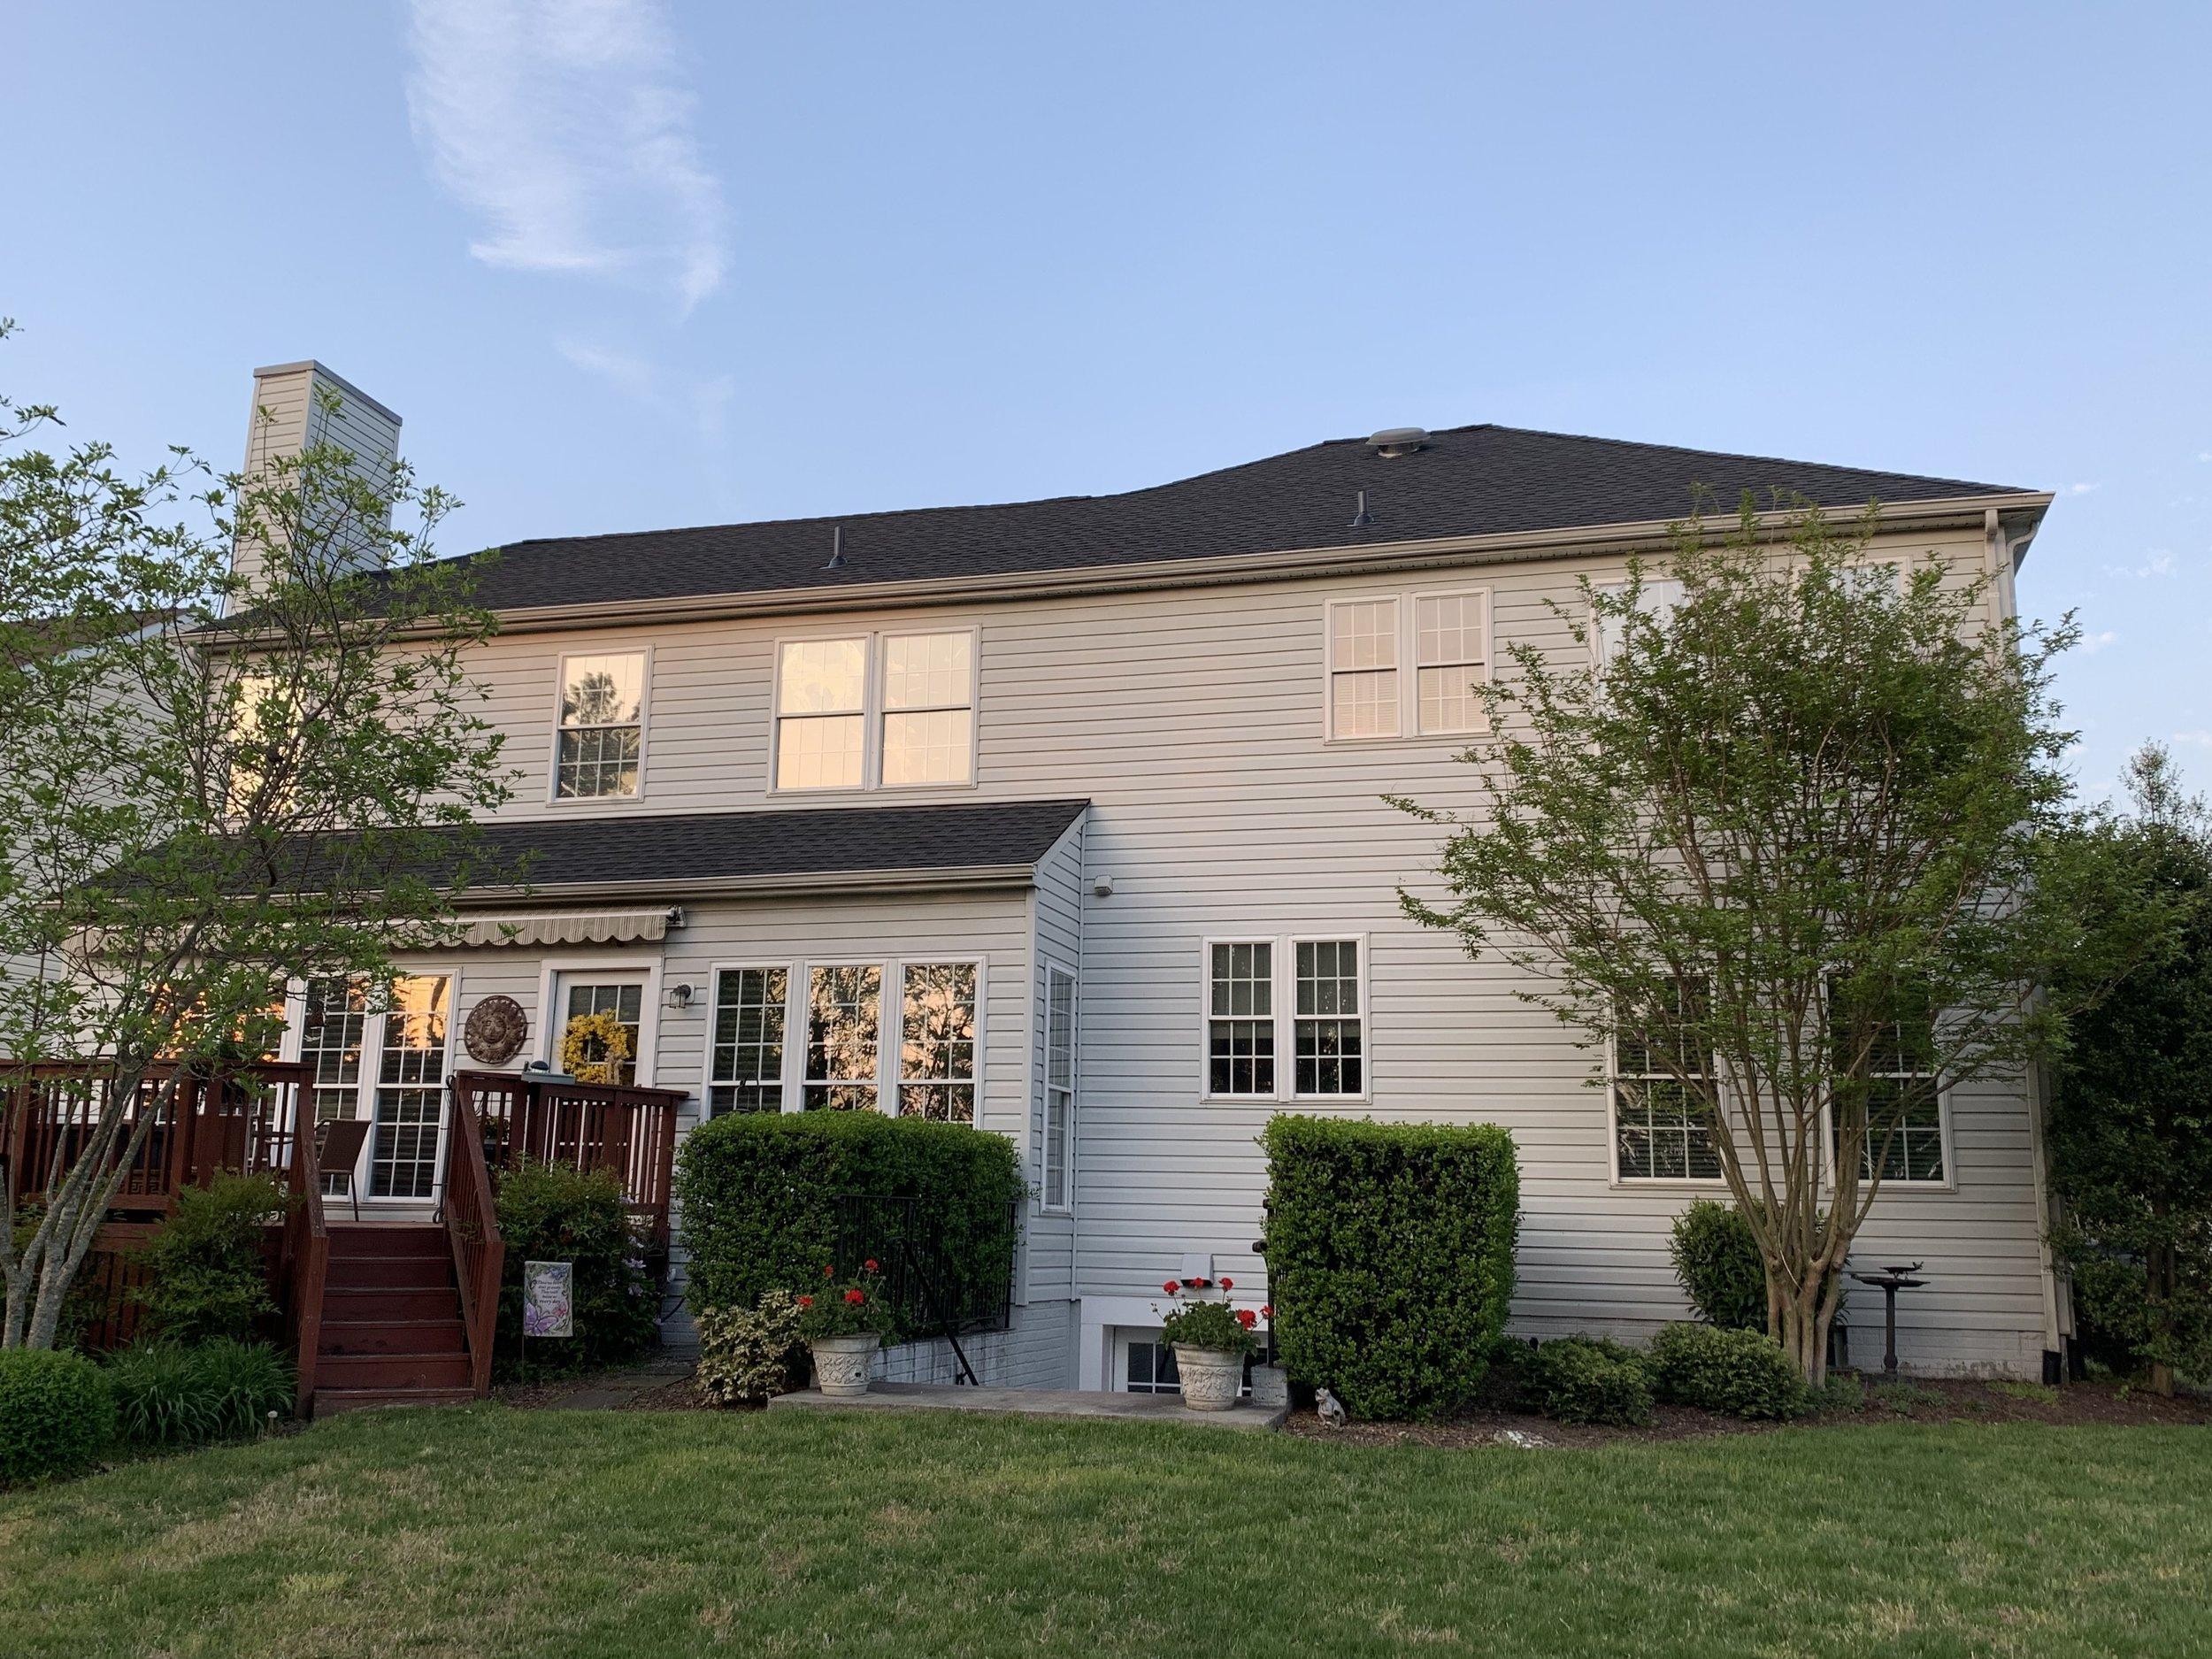 A view of the Mackrell family's beautiful home at sunset!